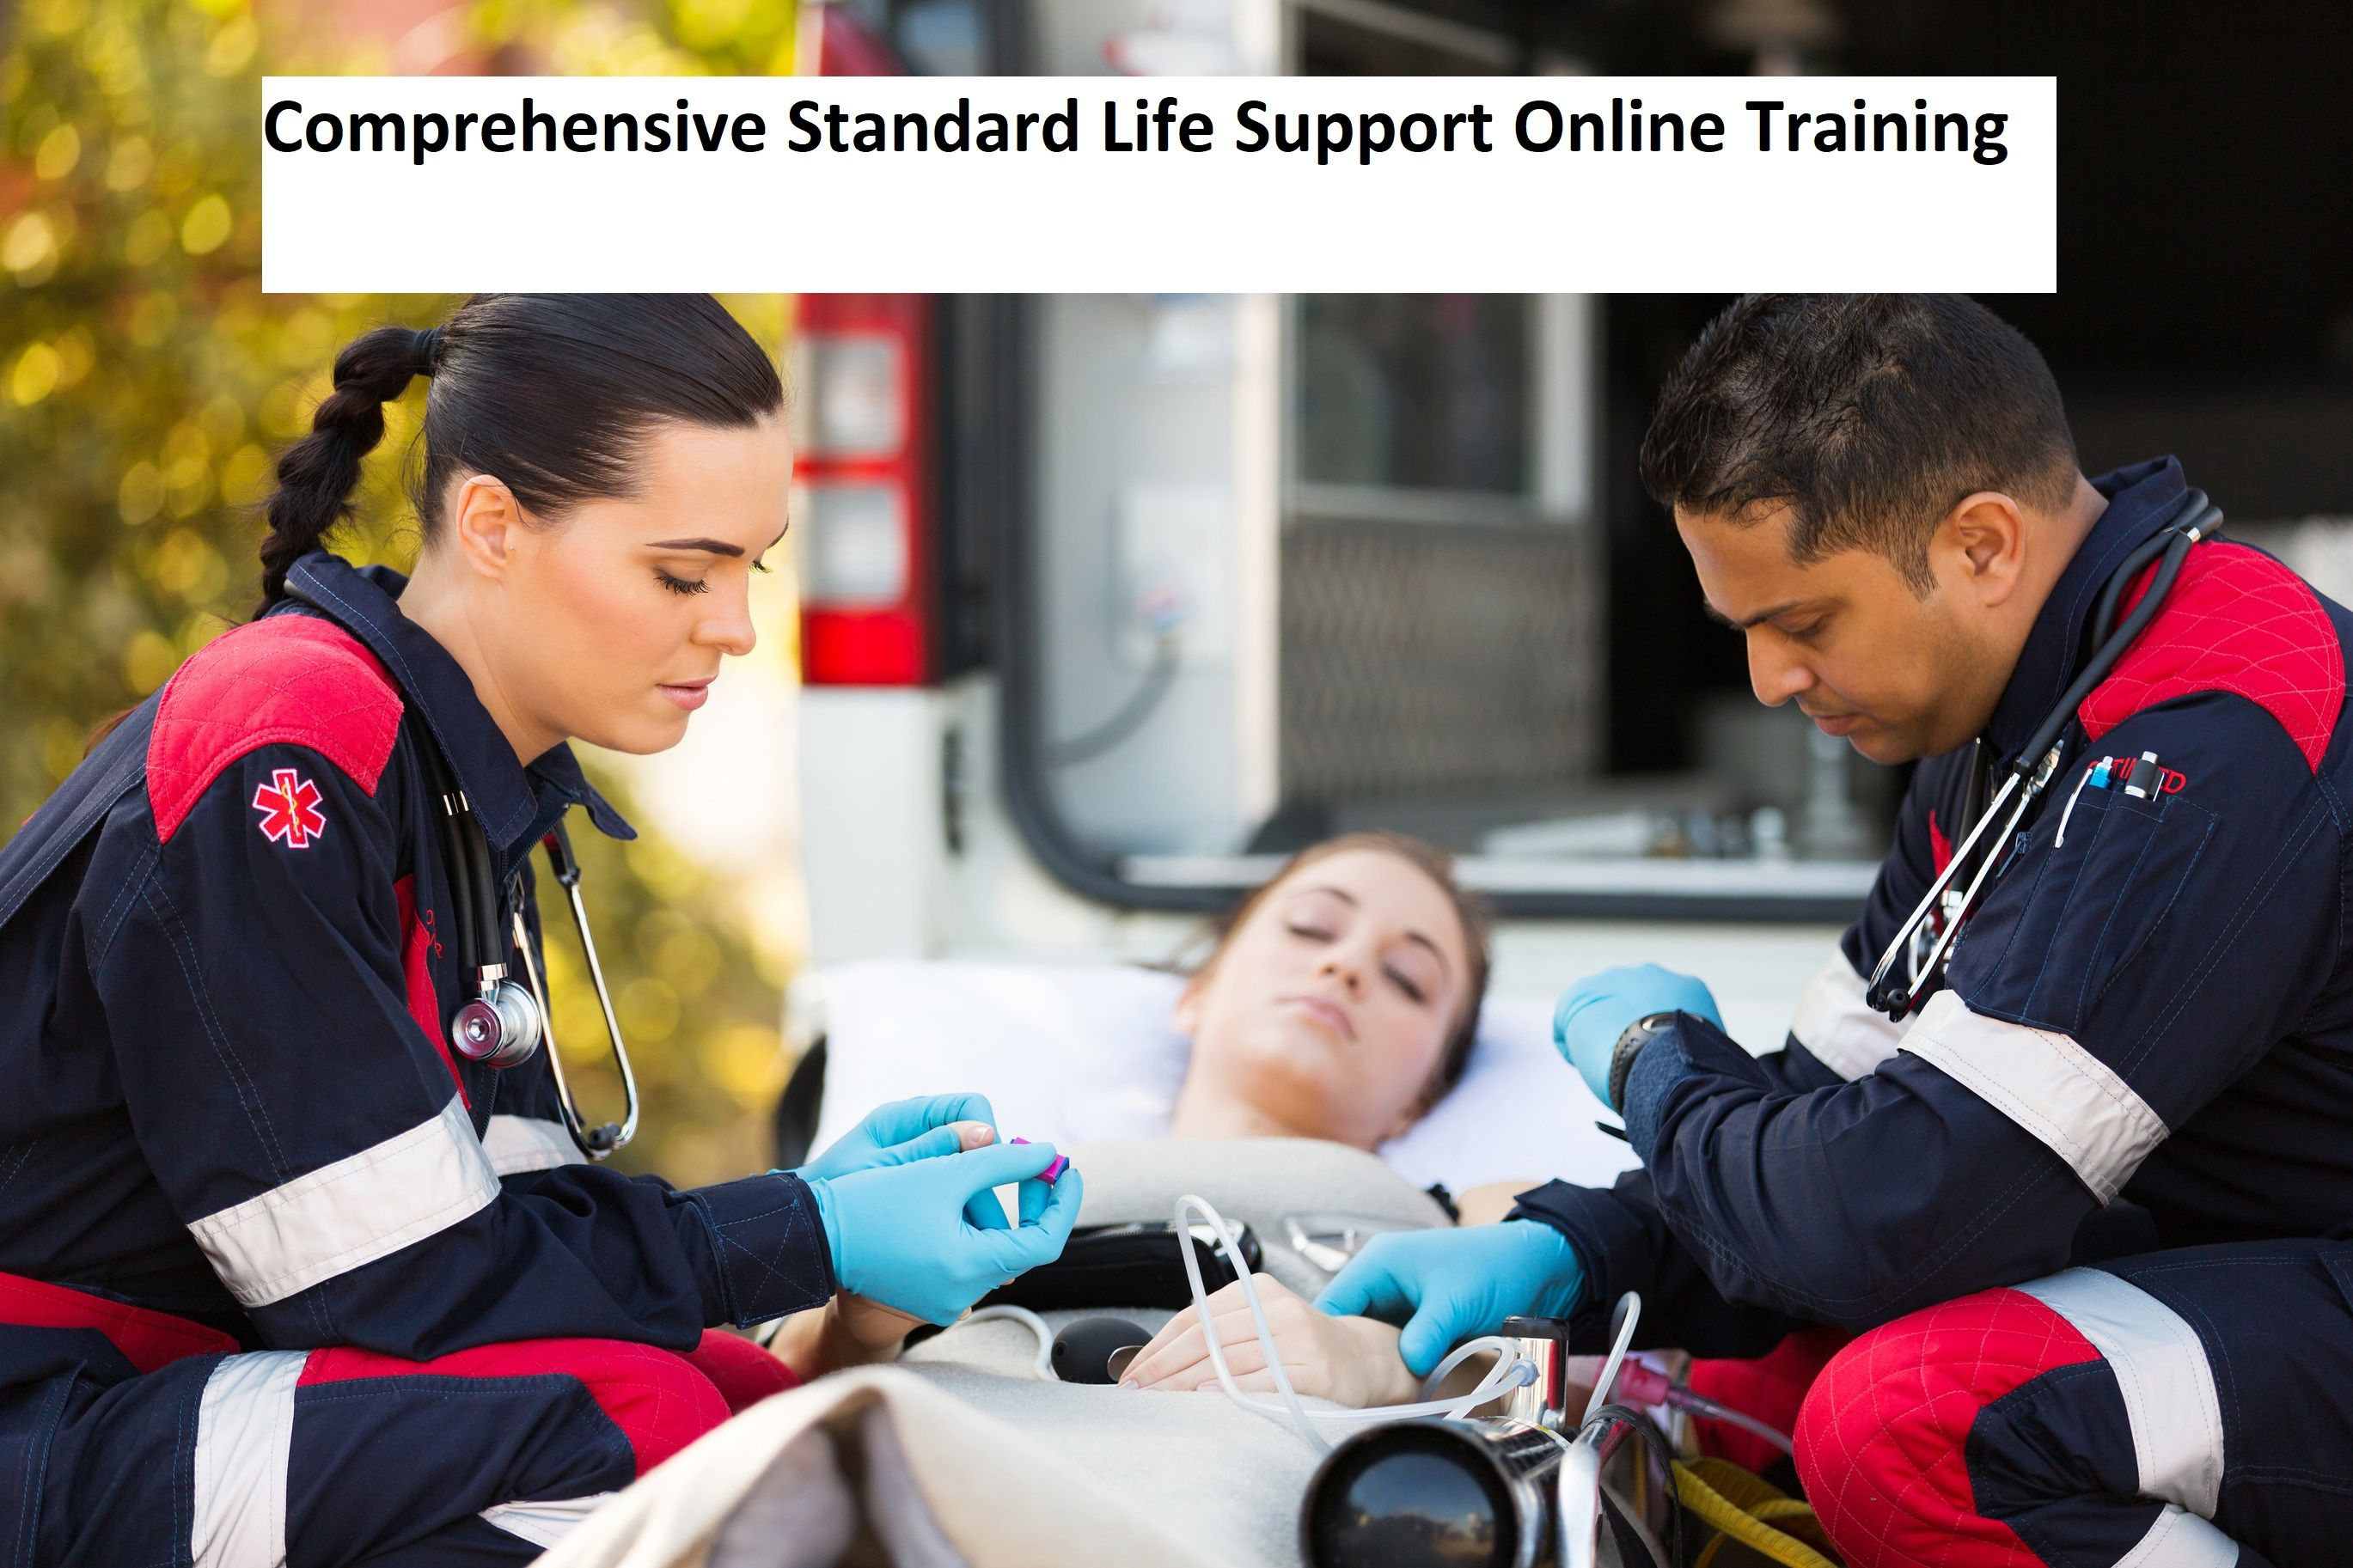 Online trainingcertification is valid for 2 years from completion certification is valid for 2 years from completion adult pediatric cpr 1betcityfo Choice Image